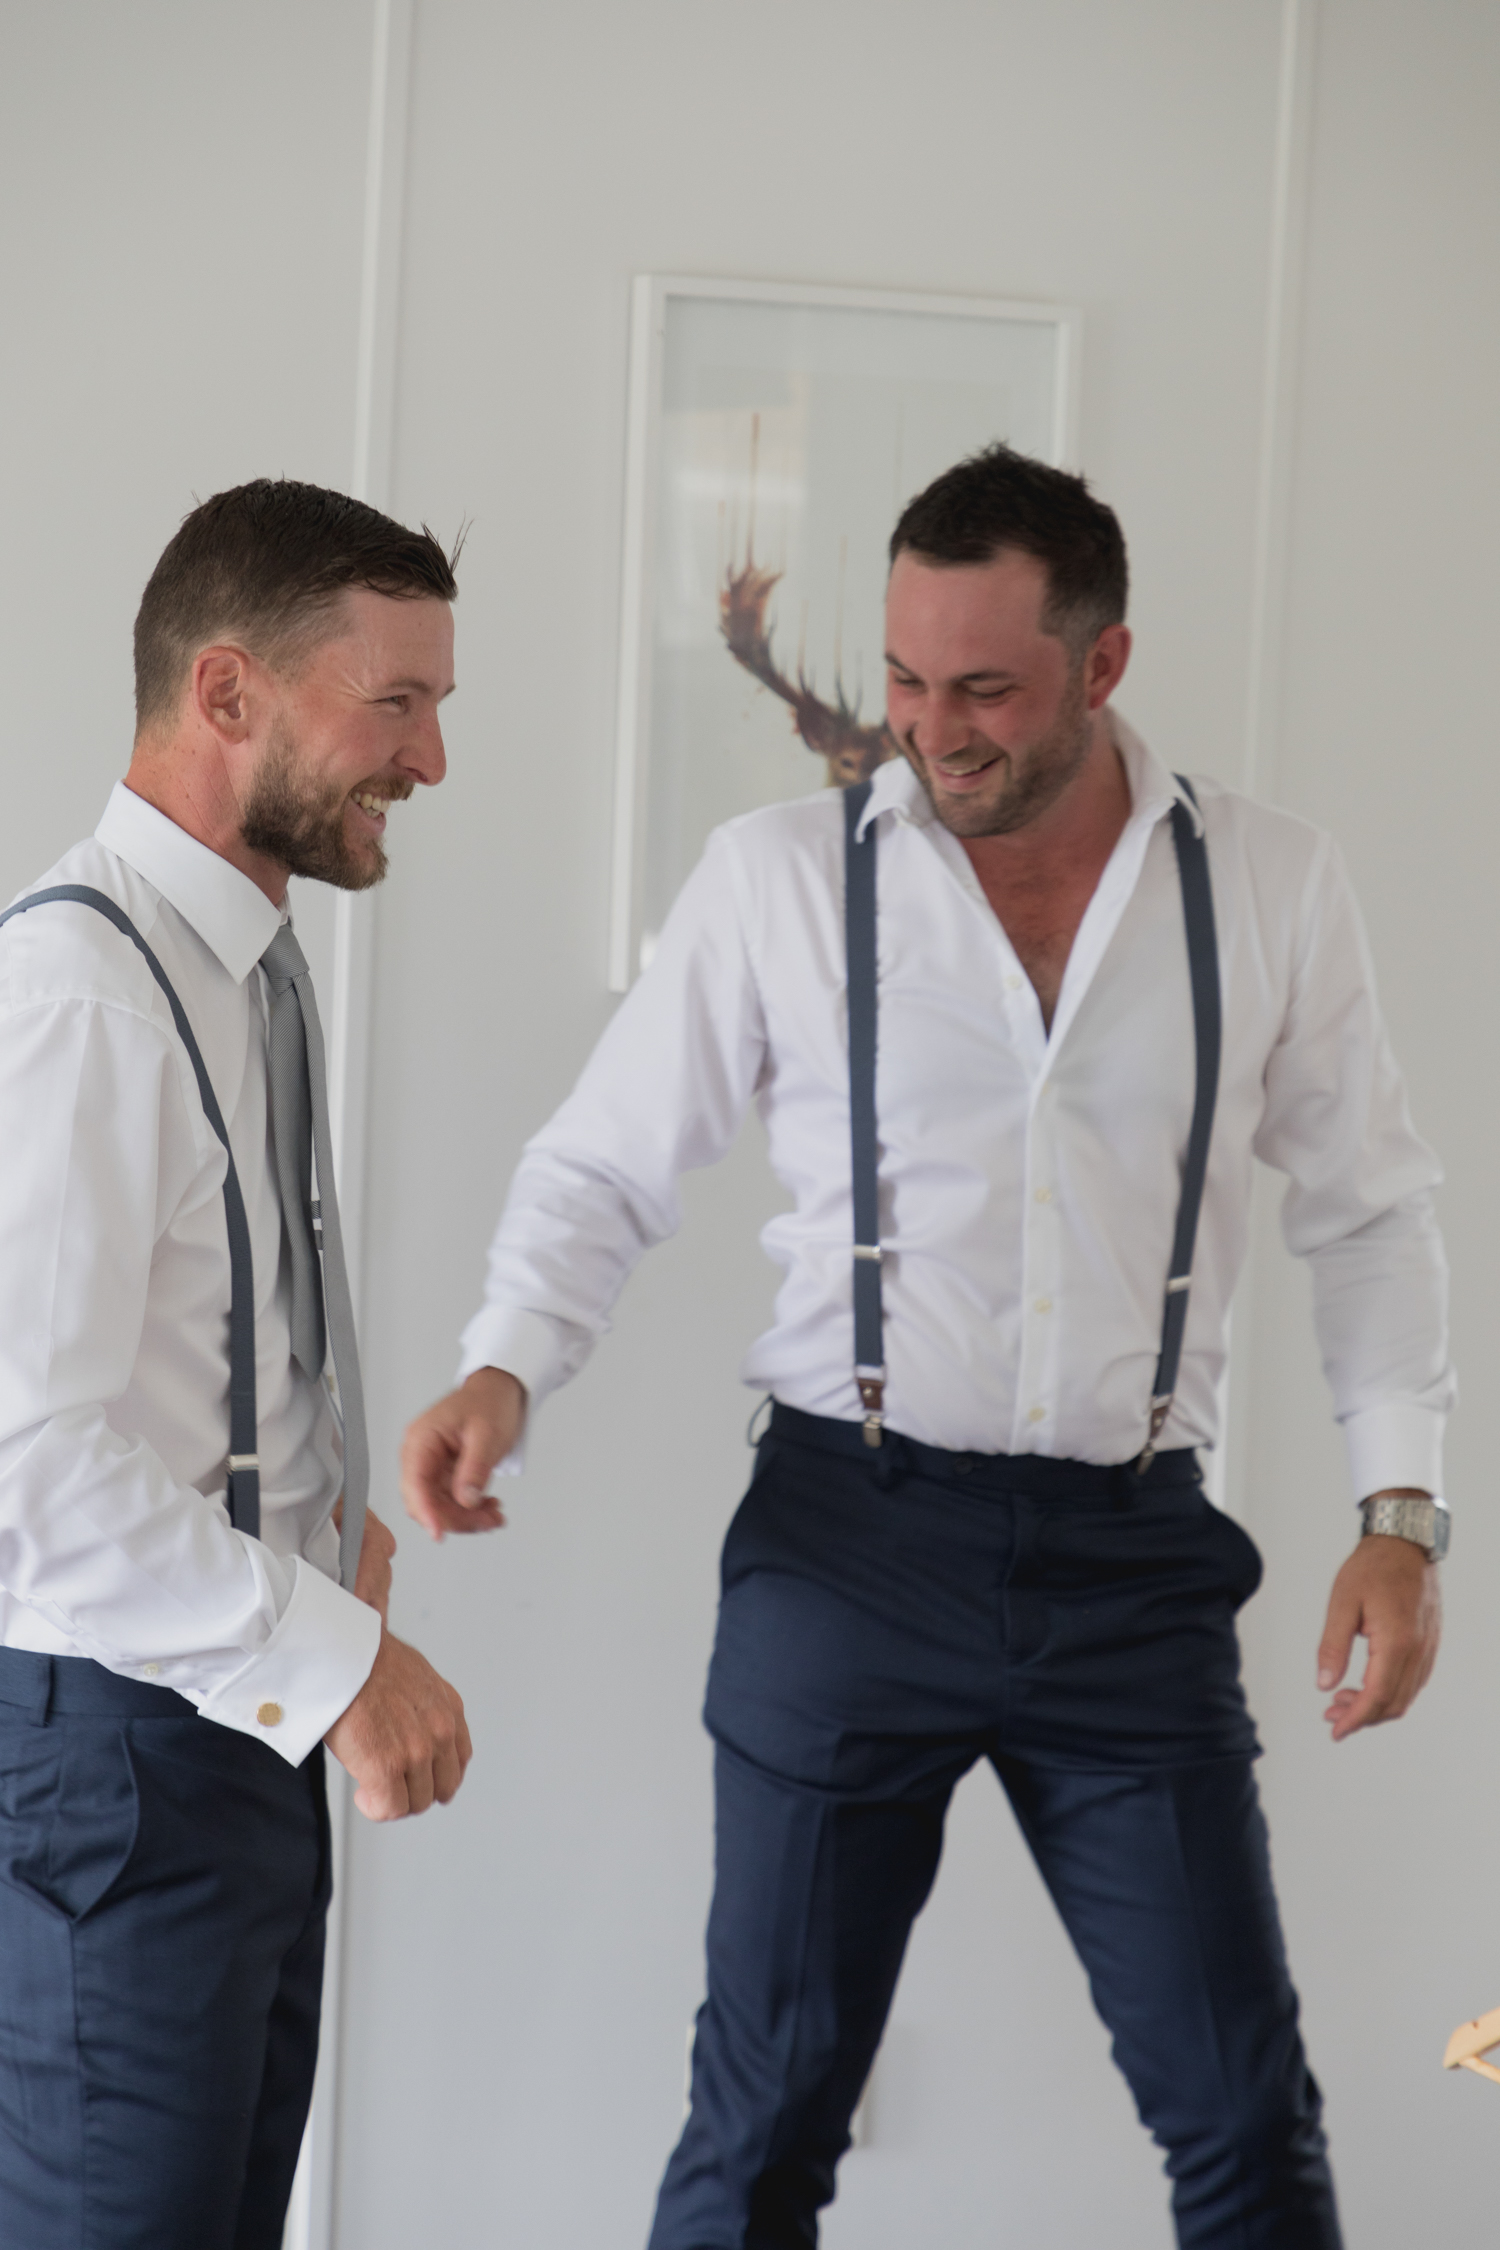 wedding-at-the-red-barn-new-zealand-wedding-photographer-groom-and-groomsmen-laughing-together.jpg